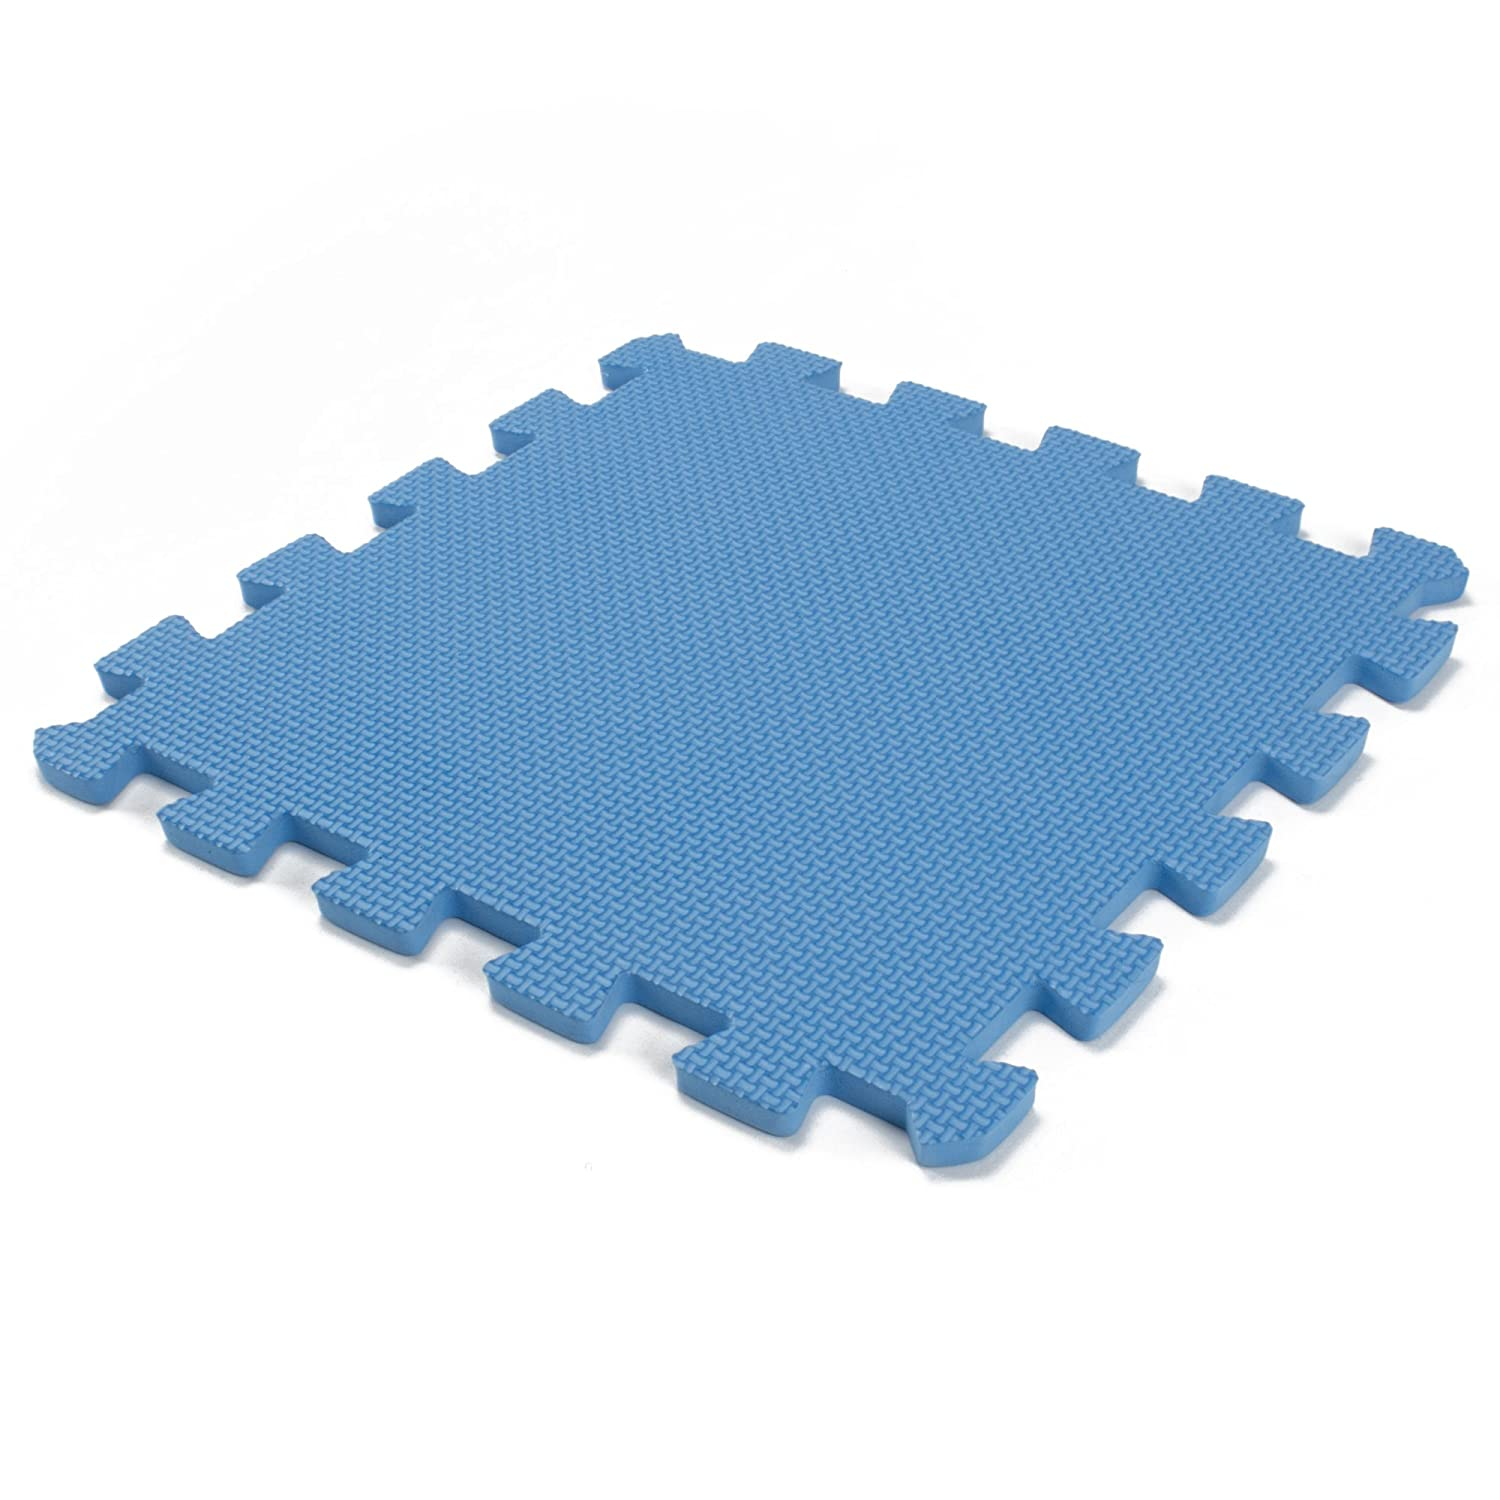 Floor mats for gym - Amazon Com Interlocking Foam Mats Thick Eva Exercise Flooring Soft Non Toxic Kids Play Tiles Puzzle For Children Baby Room Yoga Squares Babies